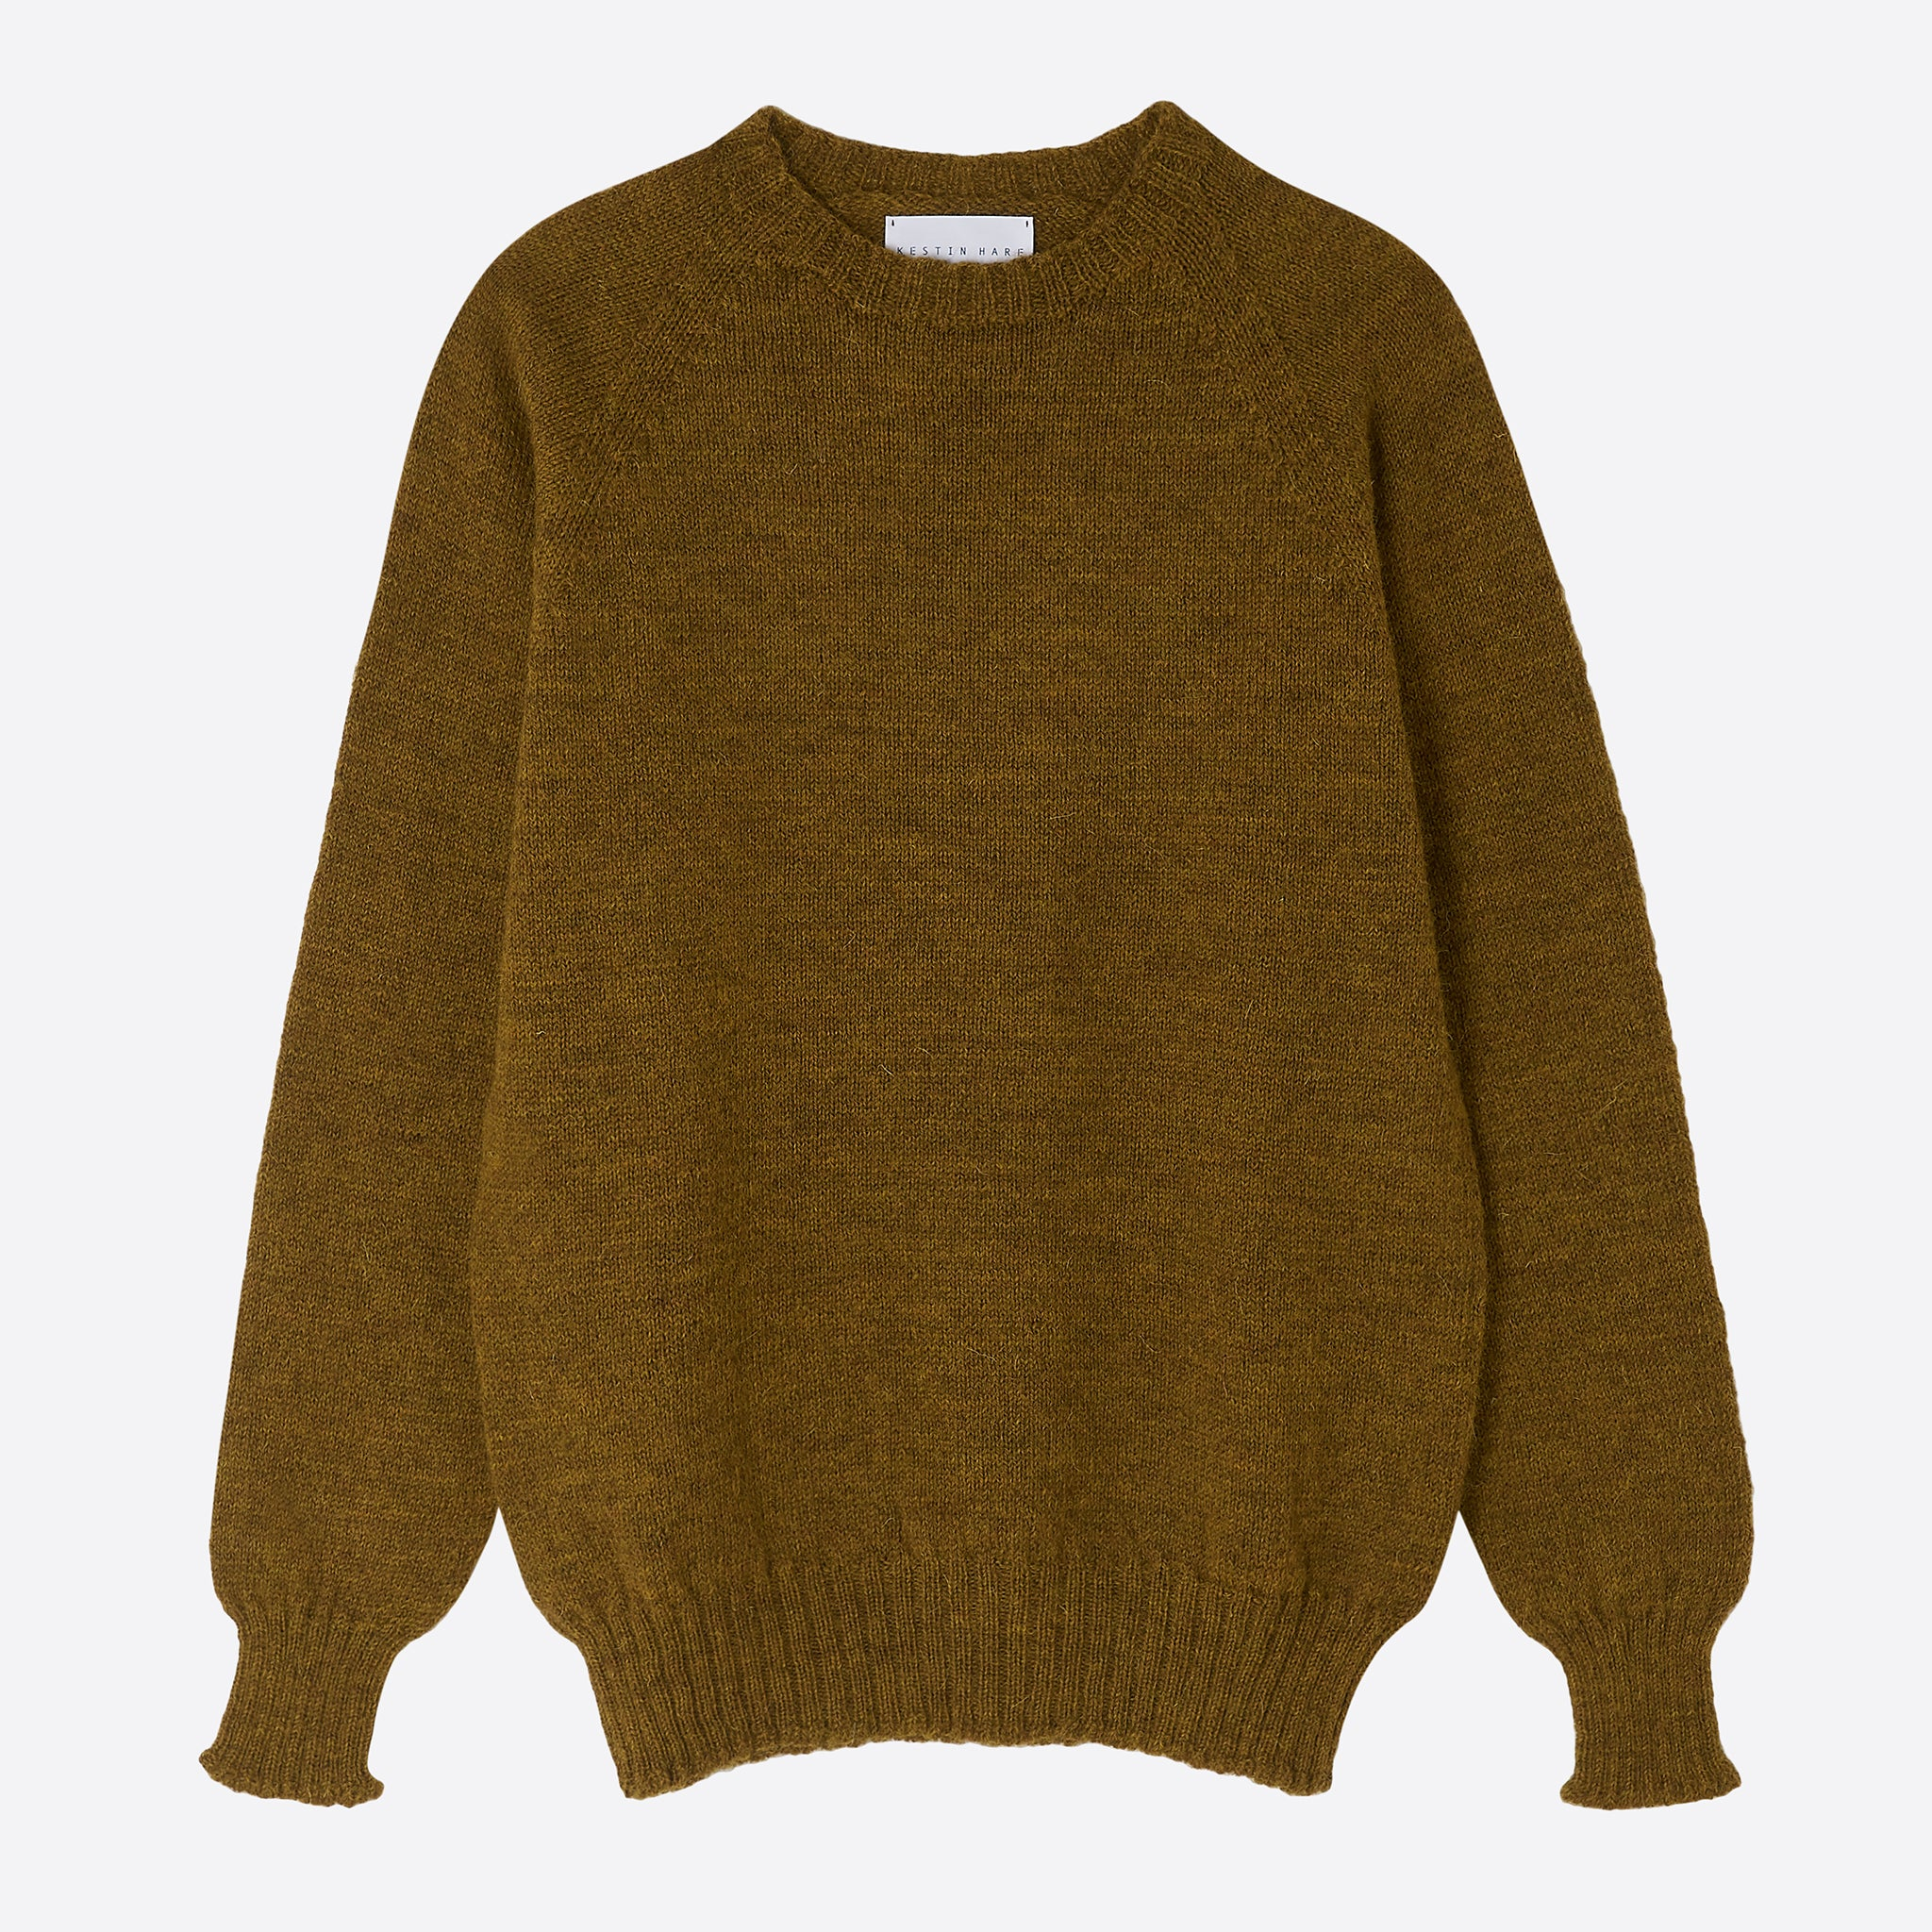 Kestin Hare British Wool Crew Neck in Harvest